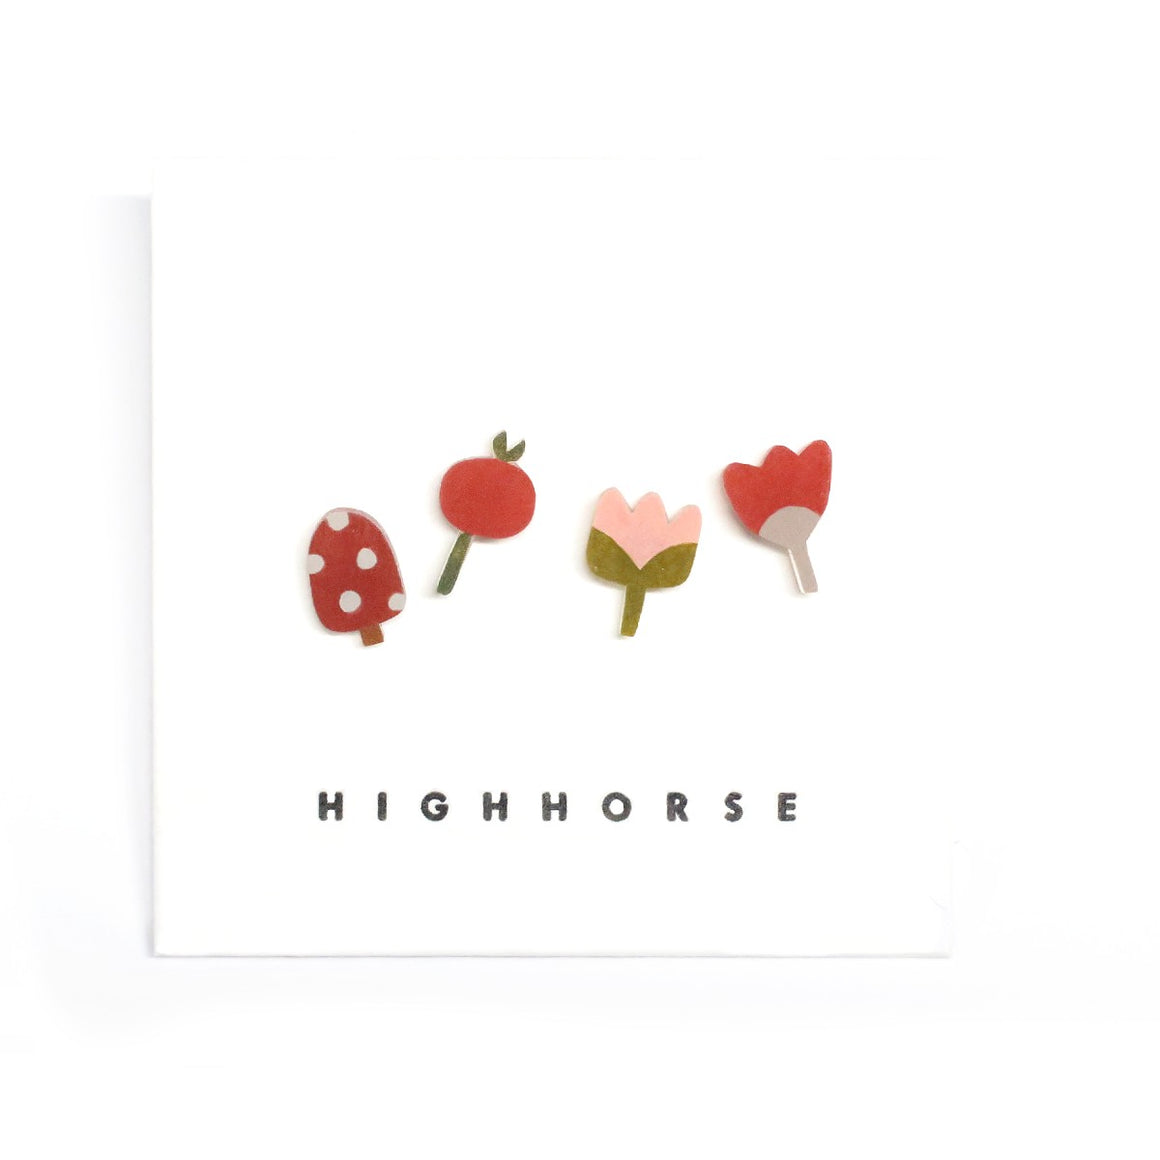 Image featuring a set of four earrings including an assorted range of flowers and mushrooms - with the word HighHorse